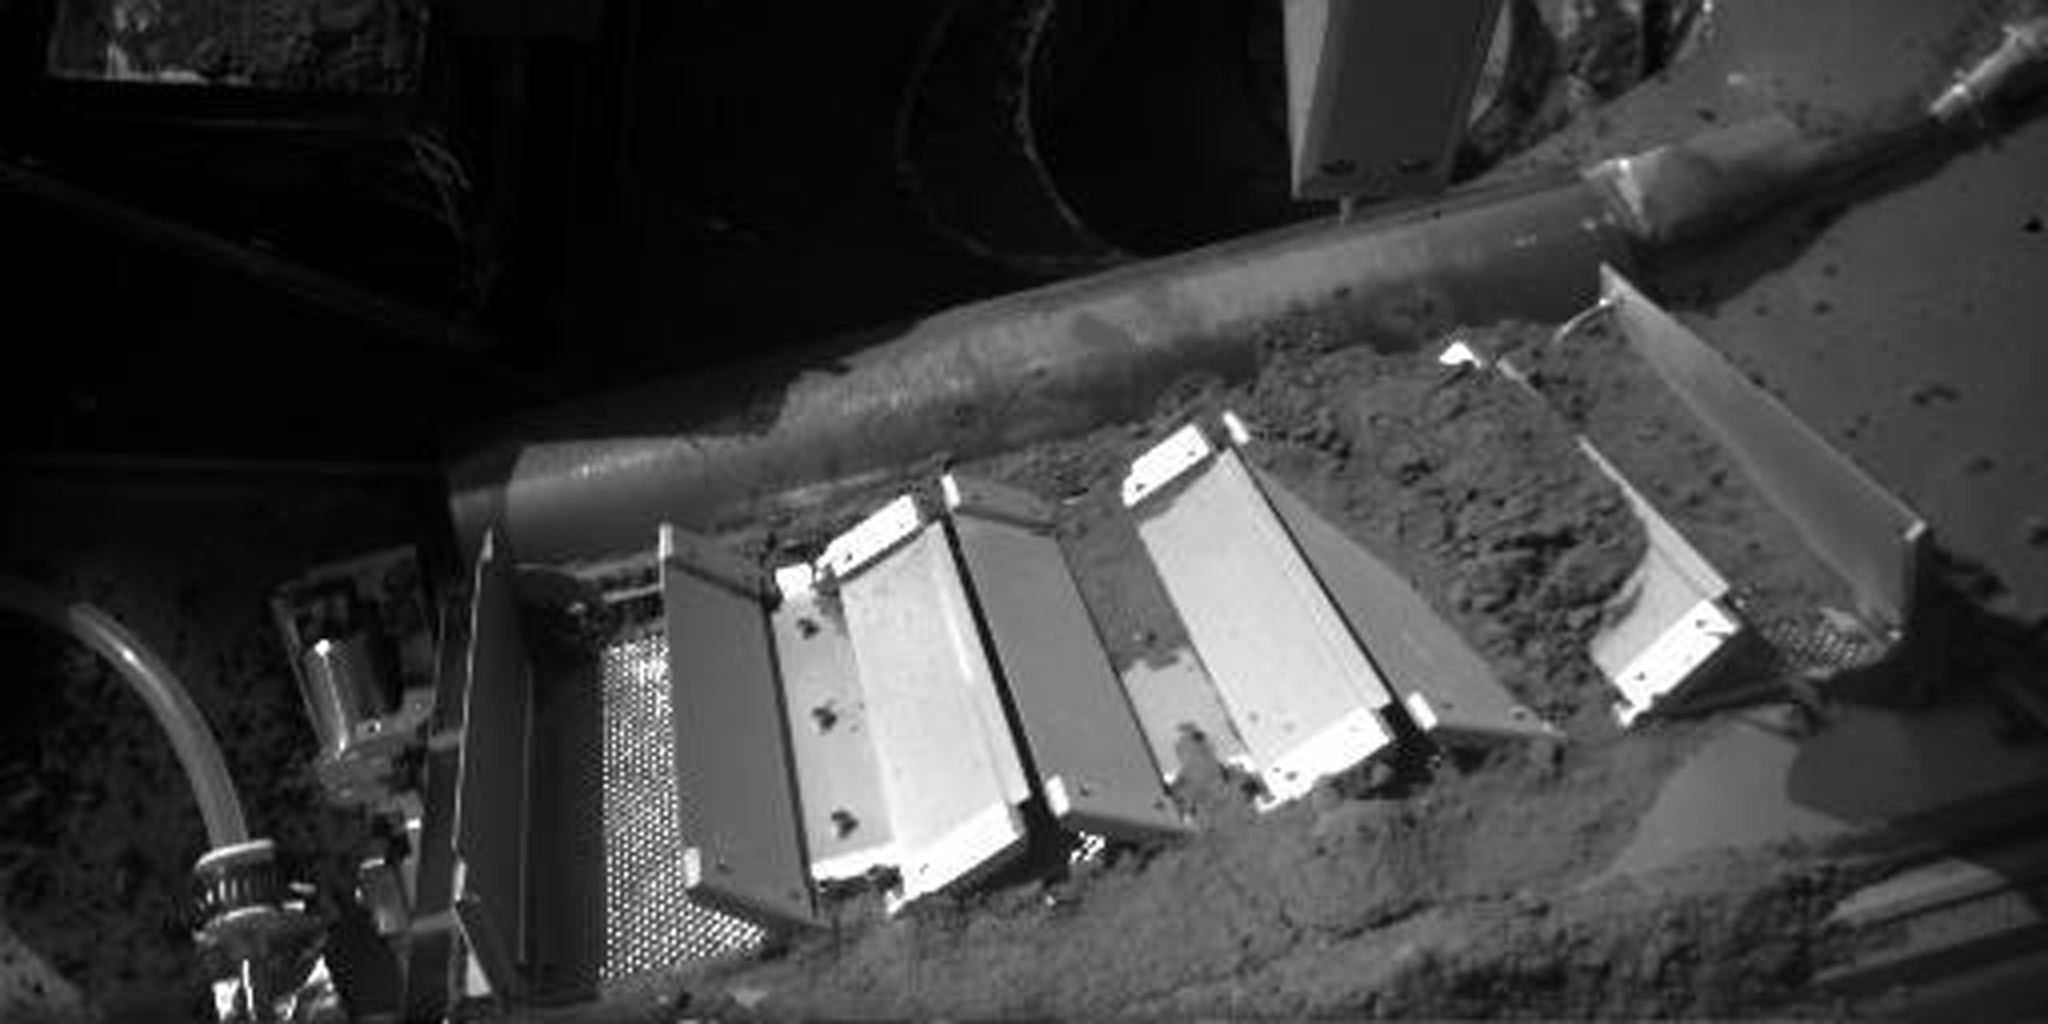 This image shows soil on the doors of the Thermal and Evolved Gas Analyzer (TEGA) onboard NASA's Phoenix Mars Lander. The image was taken by the lander on Oct. 7, 2008. This sample delivered to TEGA was named 'Rosy Red.'